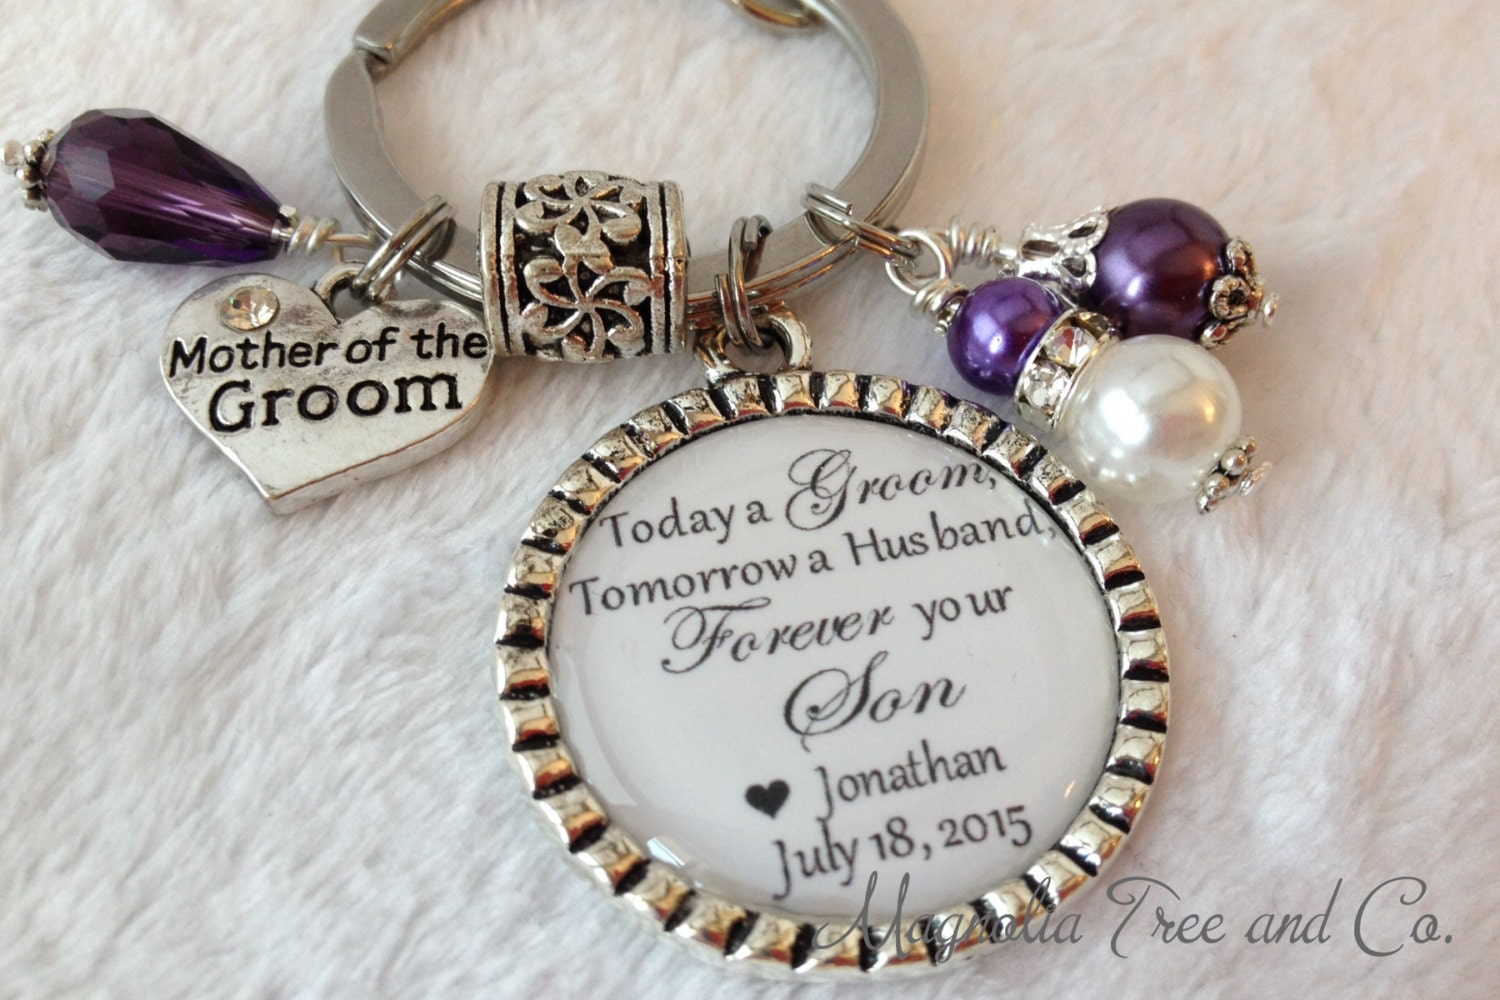 Mother Of The Groom Gift: MOTHER Of The GROOM Personalized Key Chain Necklace Thank